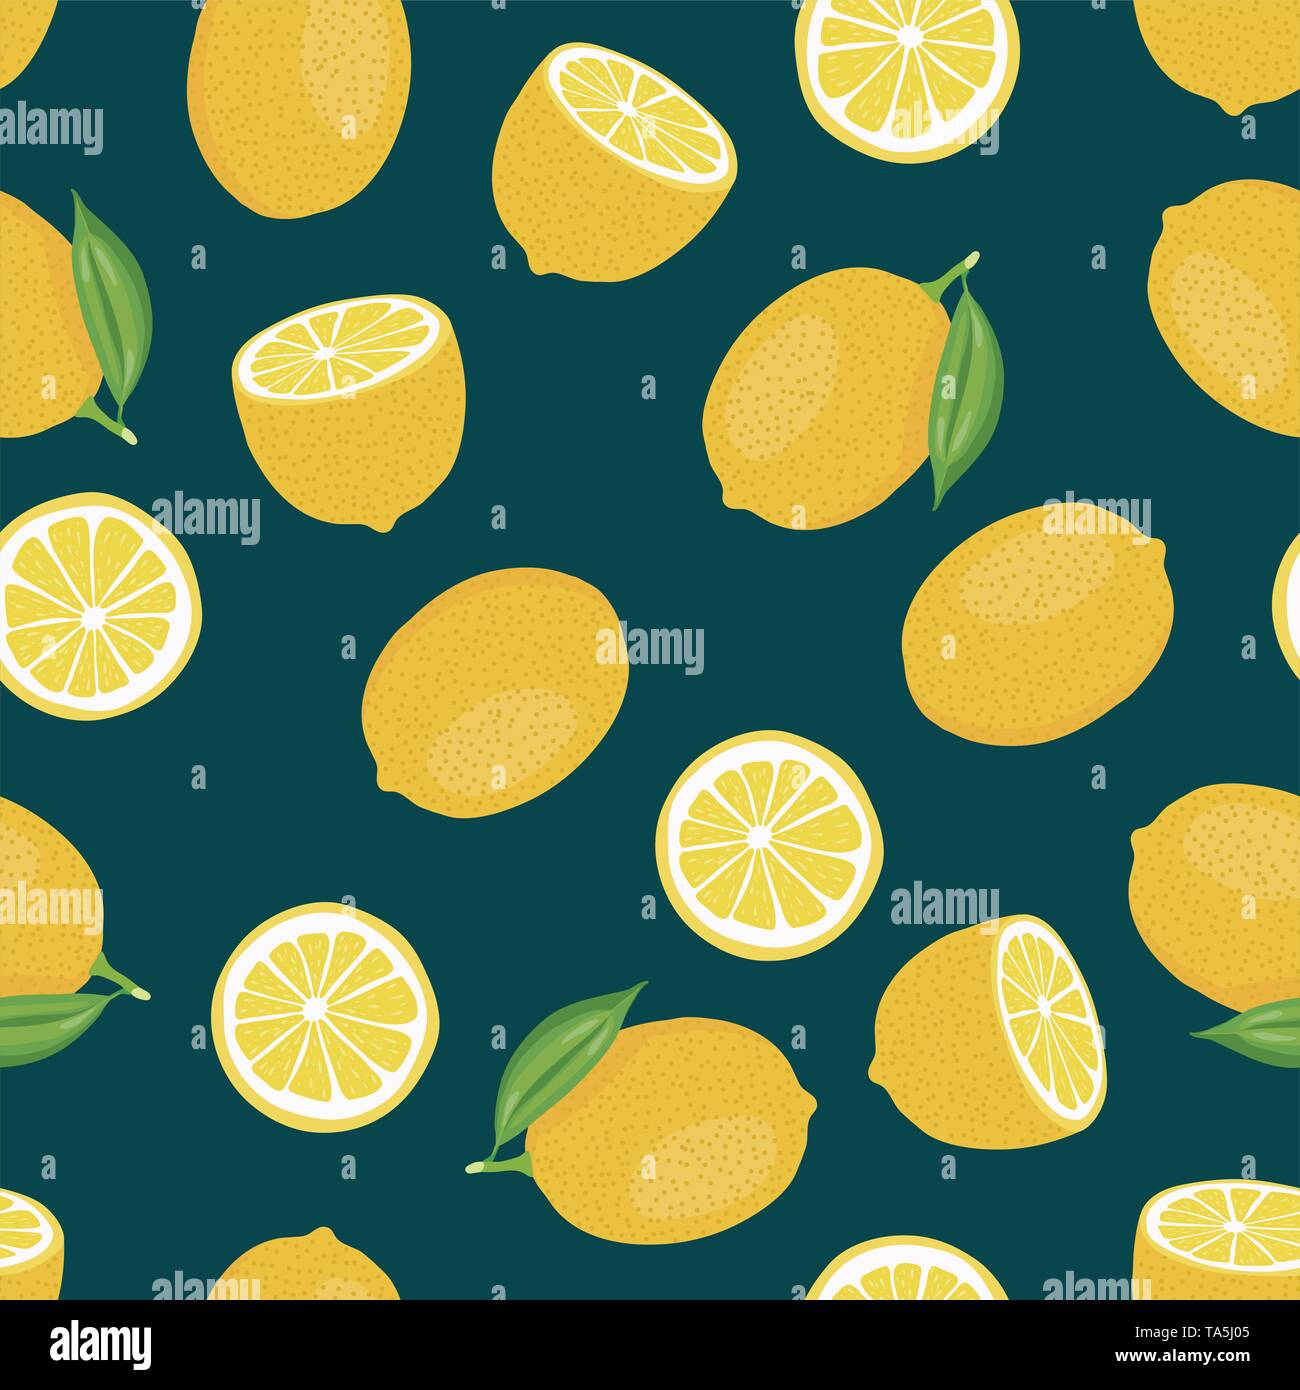 vector citrus seamless background of whole lemon with leaves and lemon slices. juicy citrus fruit seamless pattern - Stock Image